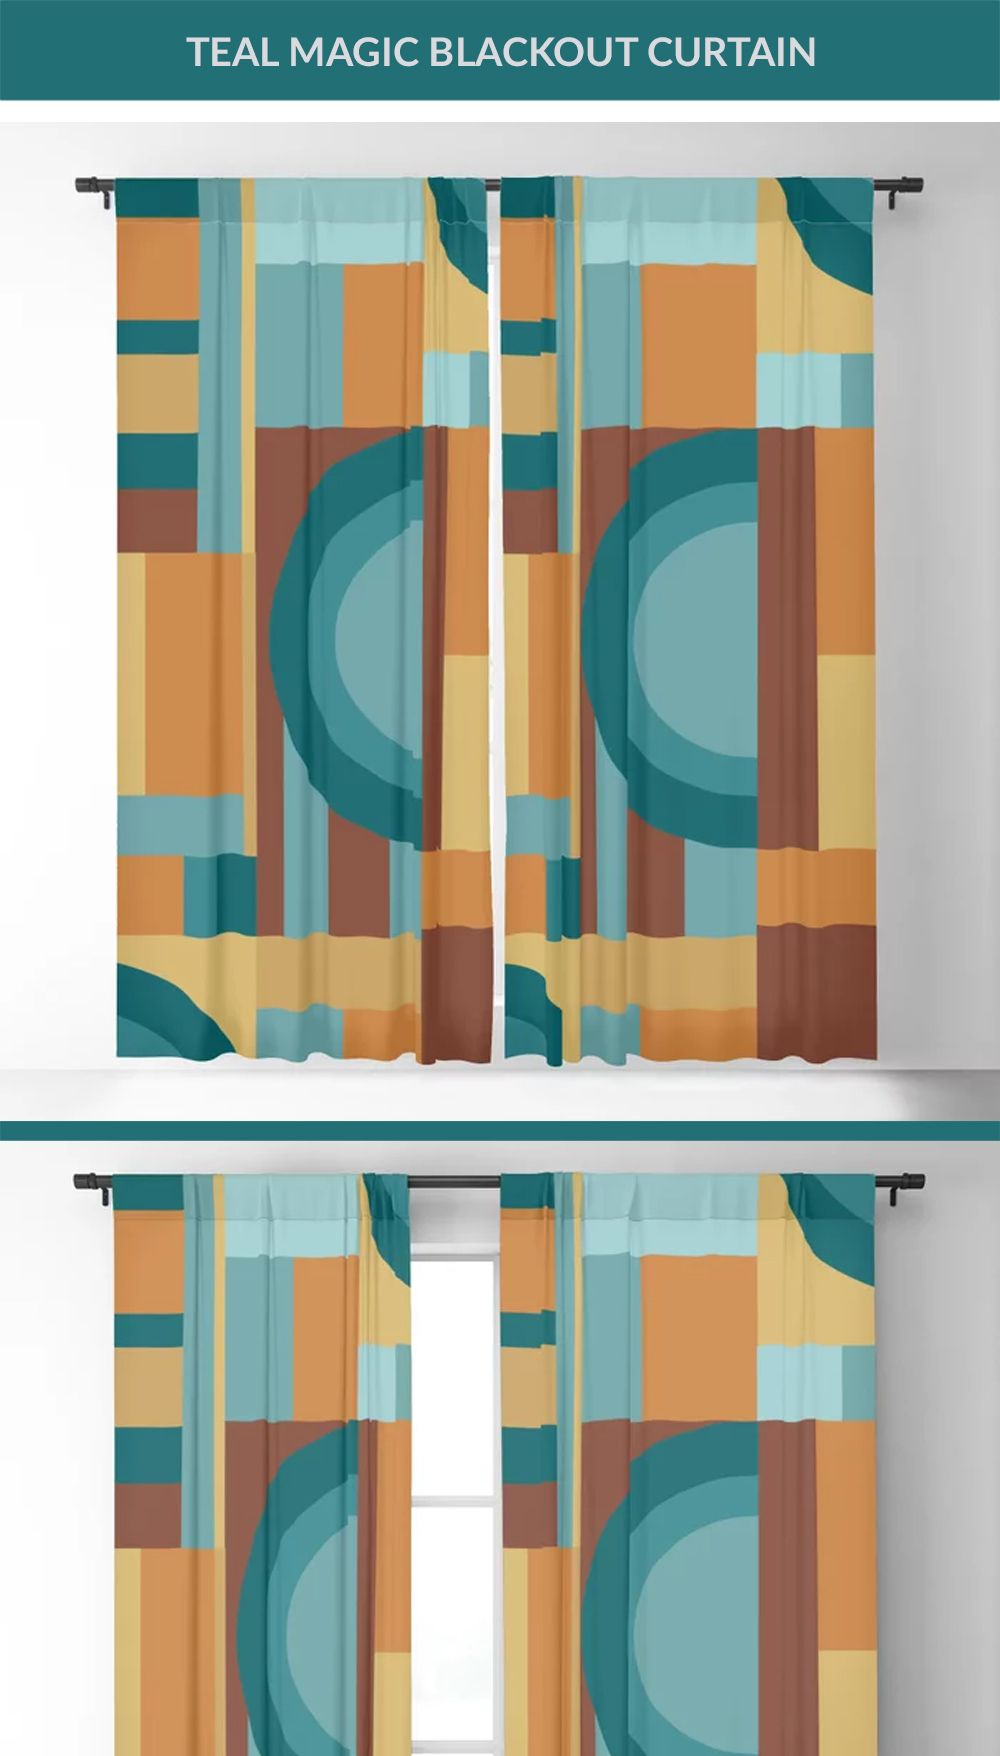 Make your homedecor uniqoue with these geometric teal Blackout Curtain. Available in either single or double panel options. Get yours now. Click the link to buy now. #homedecor #curtains #curtain #curtainwall #curtainsdesign #curtaindesign #blackoutcurtains #floralcurtains #society6